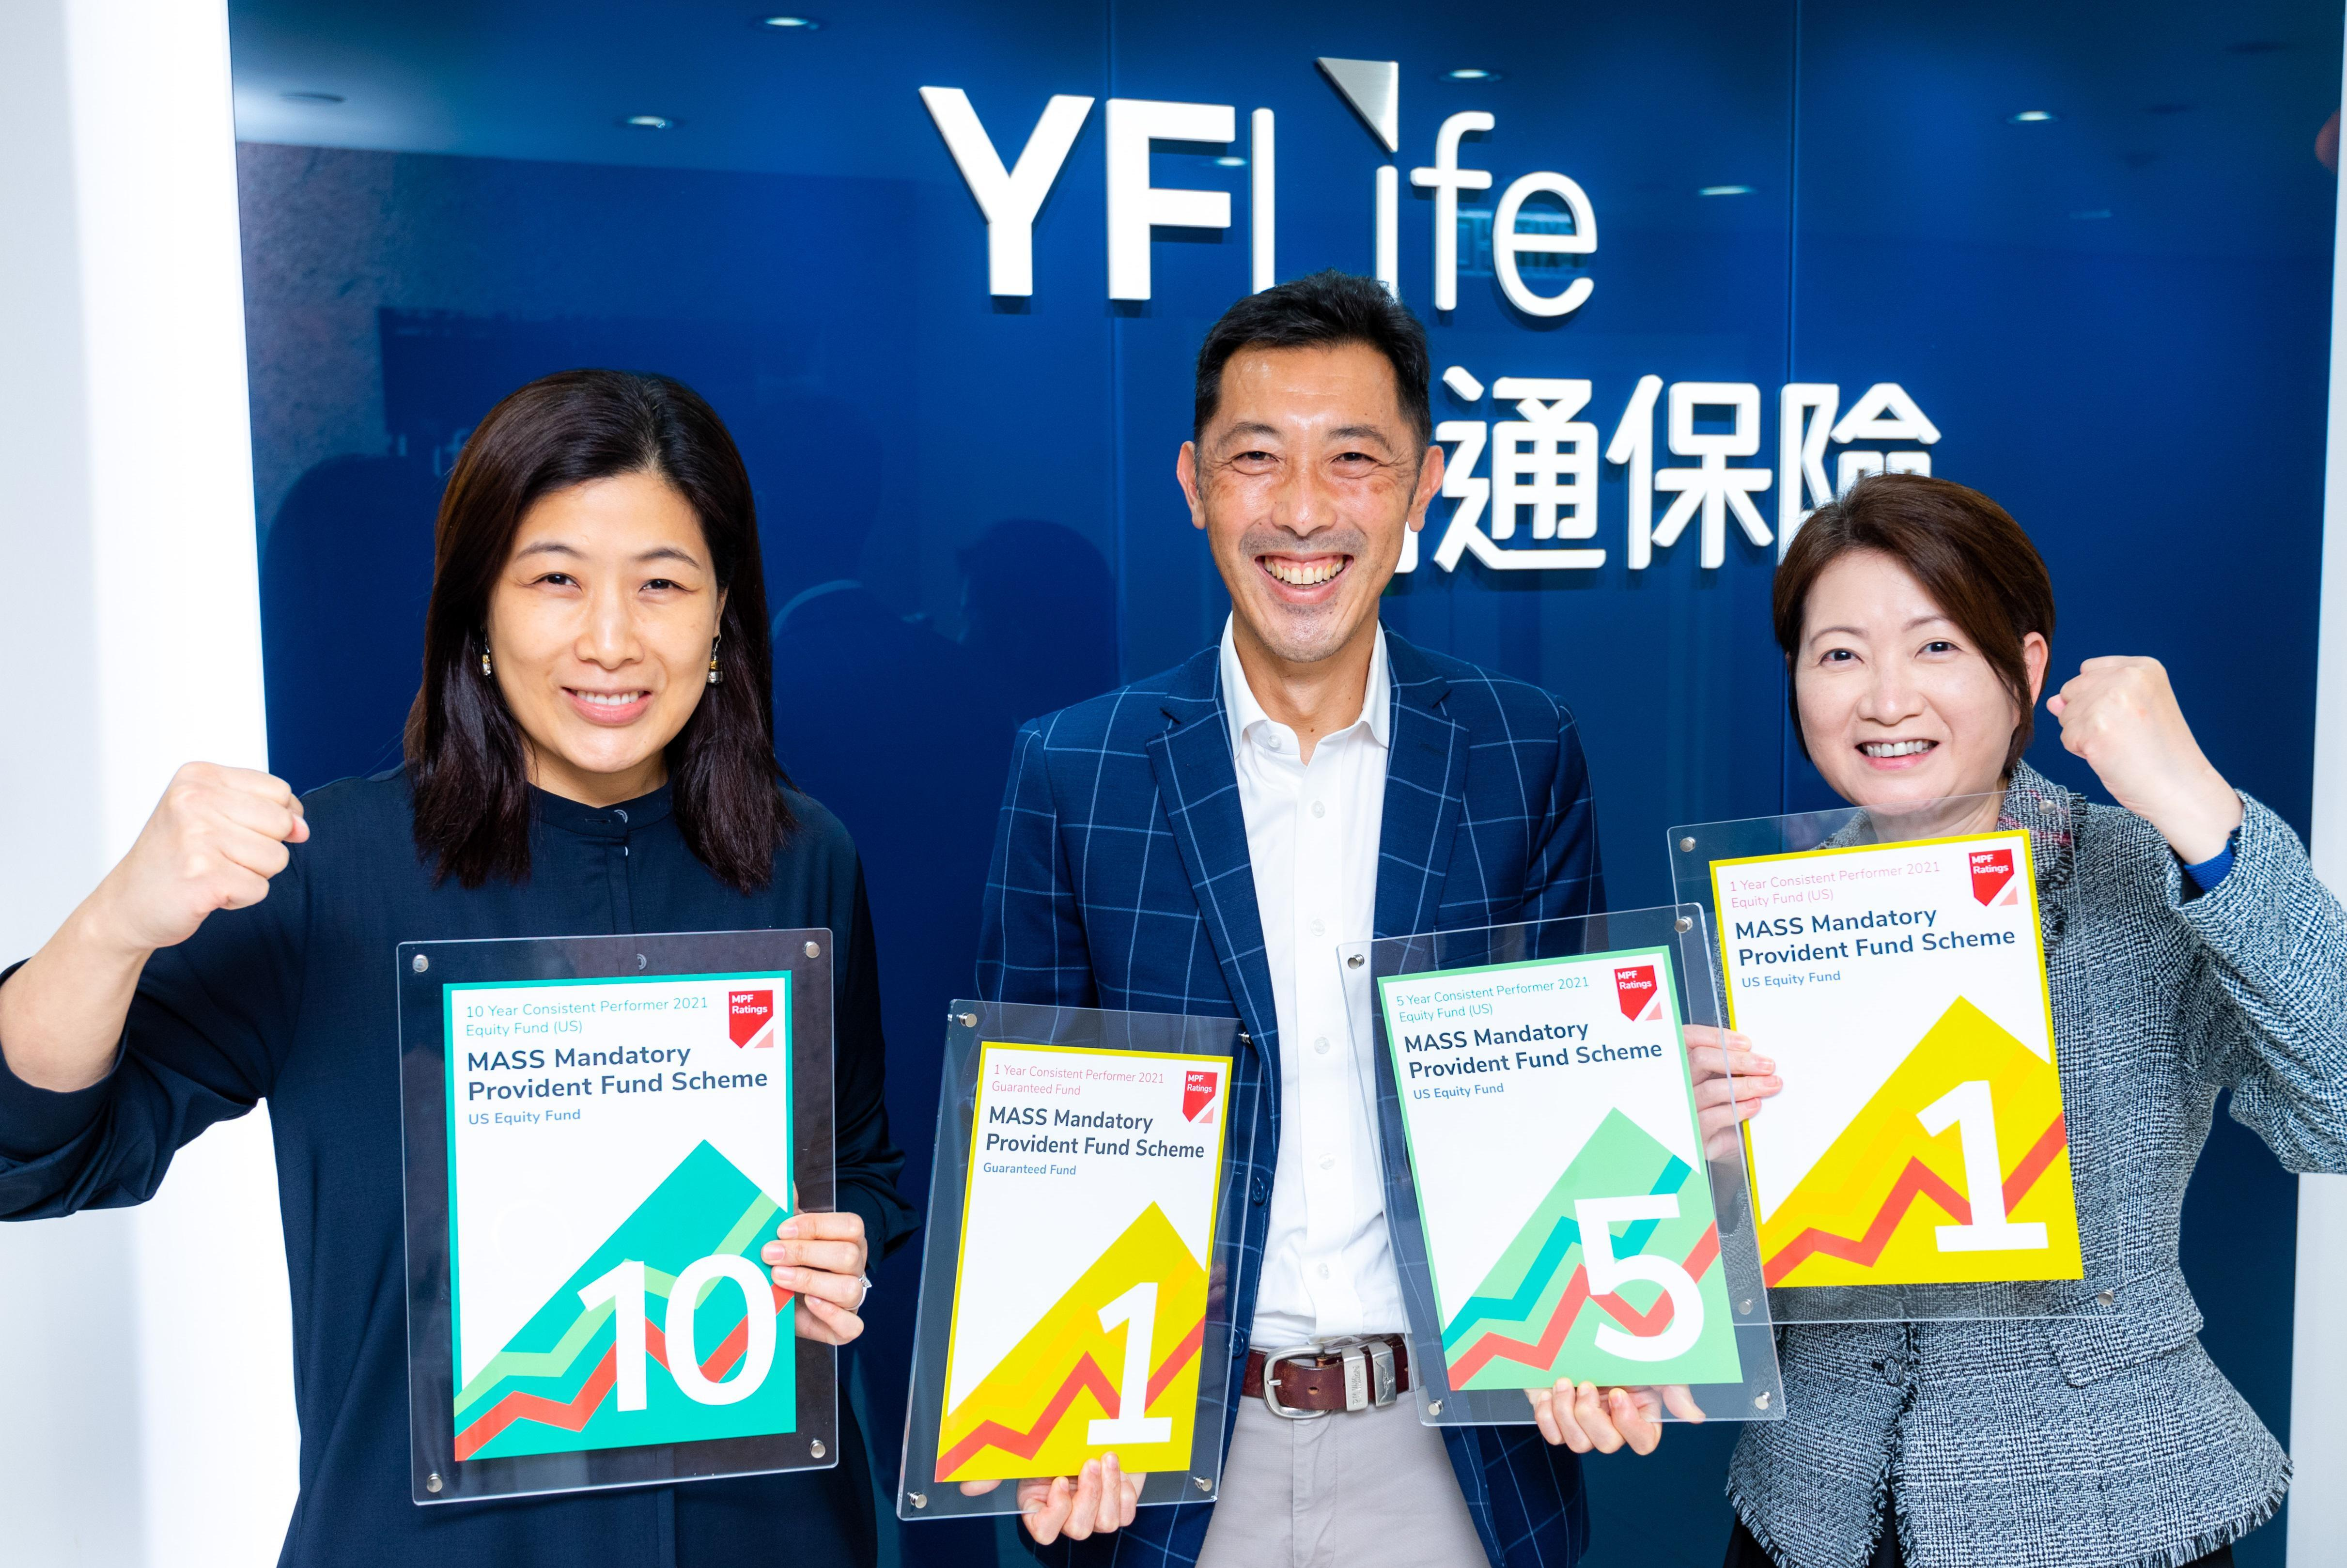 """Mr. Francis Chung, Chairman of MPF Ratings (in the middle), presents the four awards of """"MPF Ratings Consistent Performers"""" to Ms. Suki Cheung, Vice President and Head of MPF and Employee Benefits, Institutional Business (on the right)."""